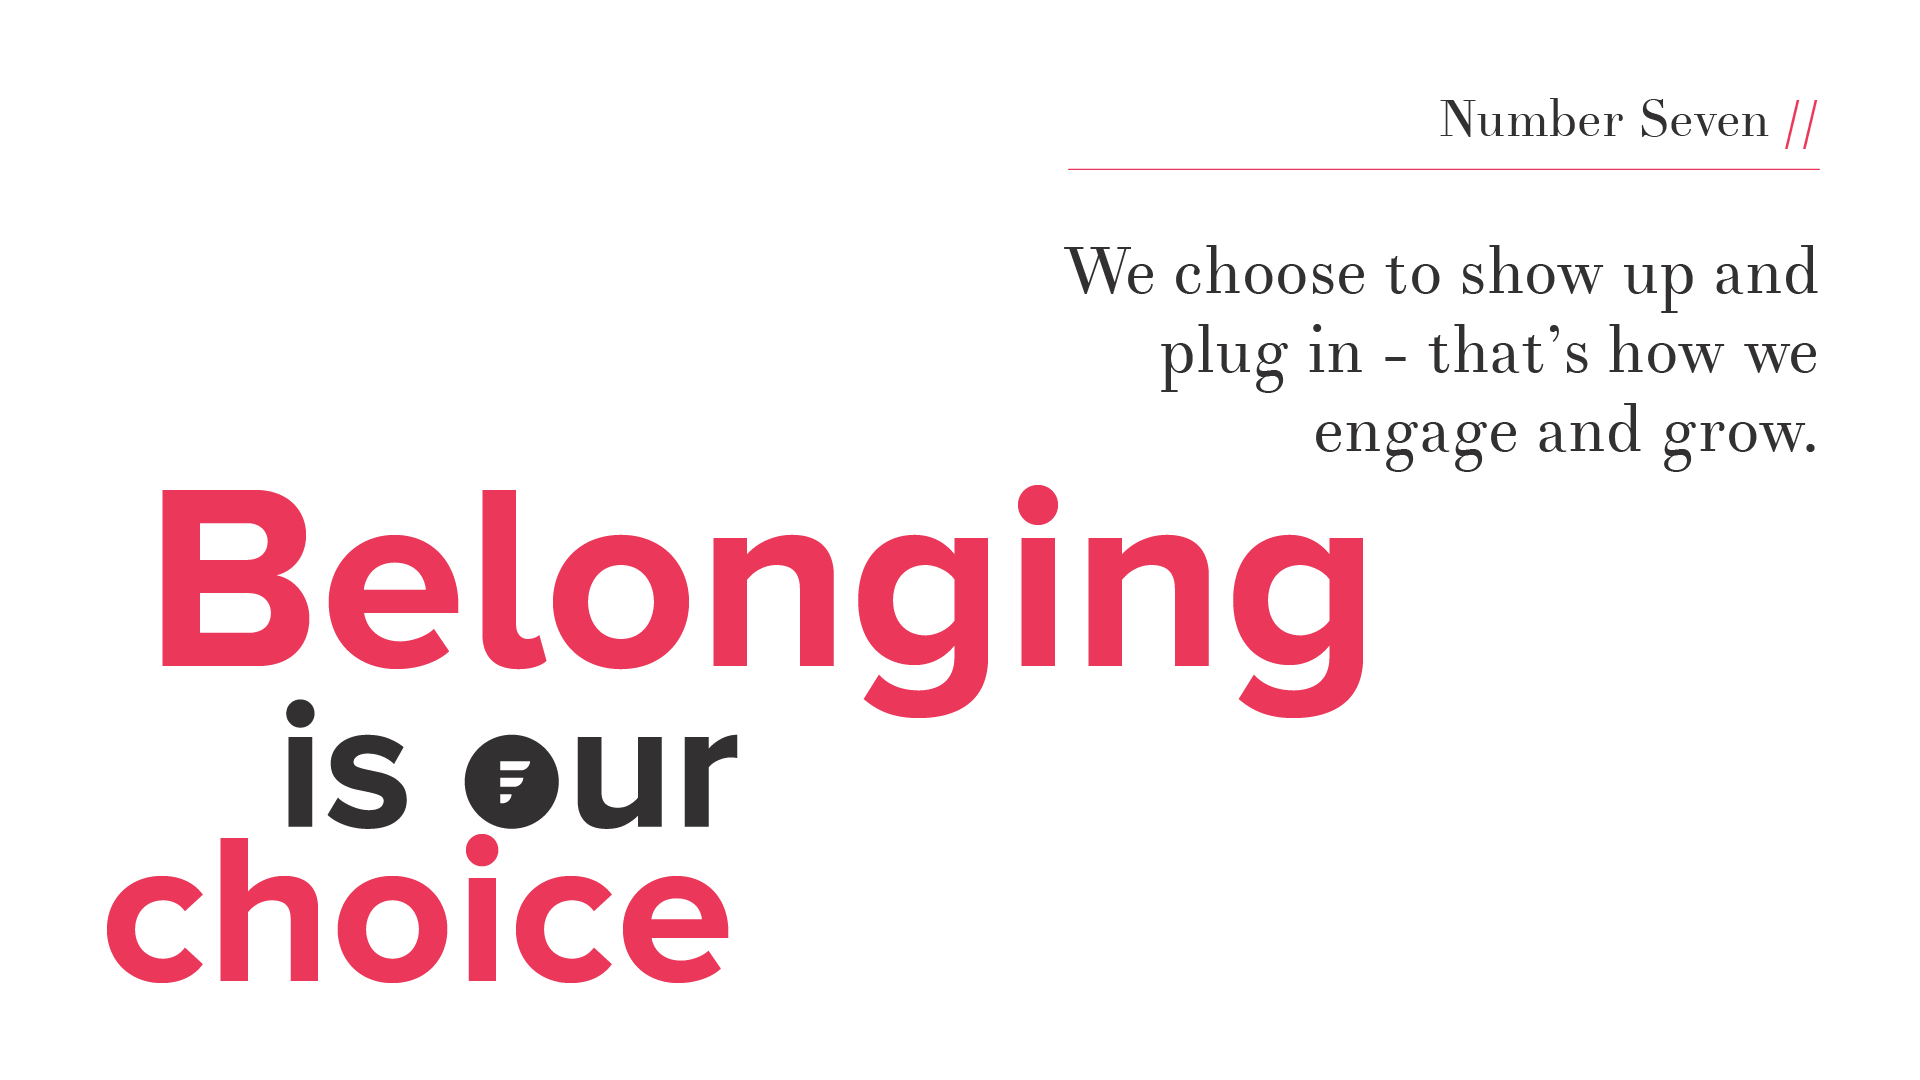 Values // Belonging is our Choice